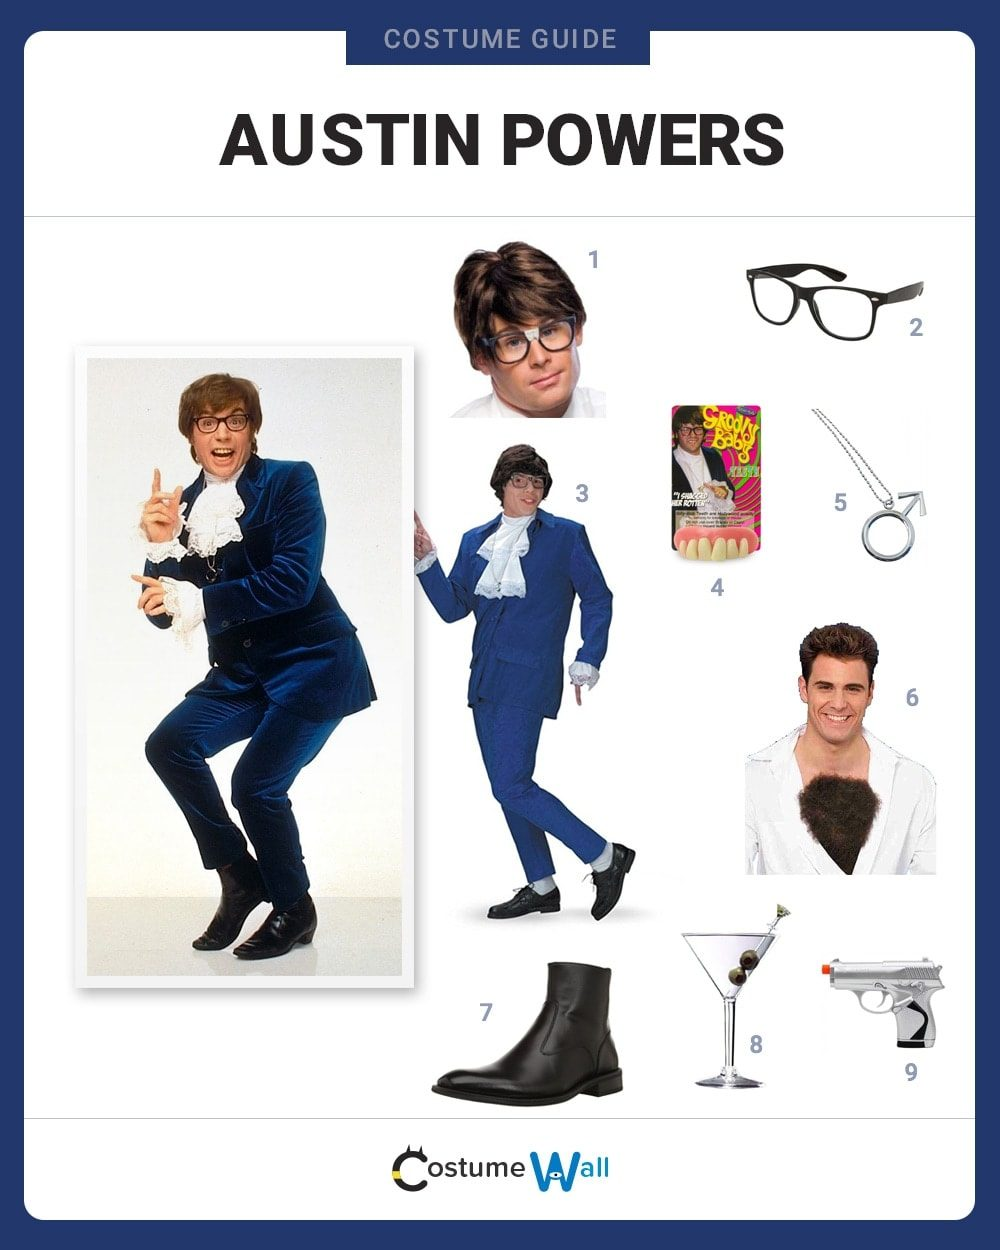 Austin Powers Costume Guide